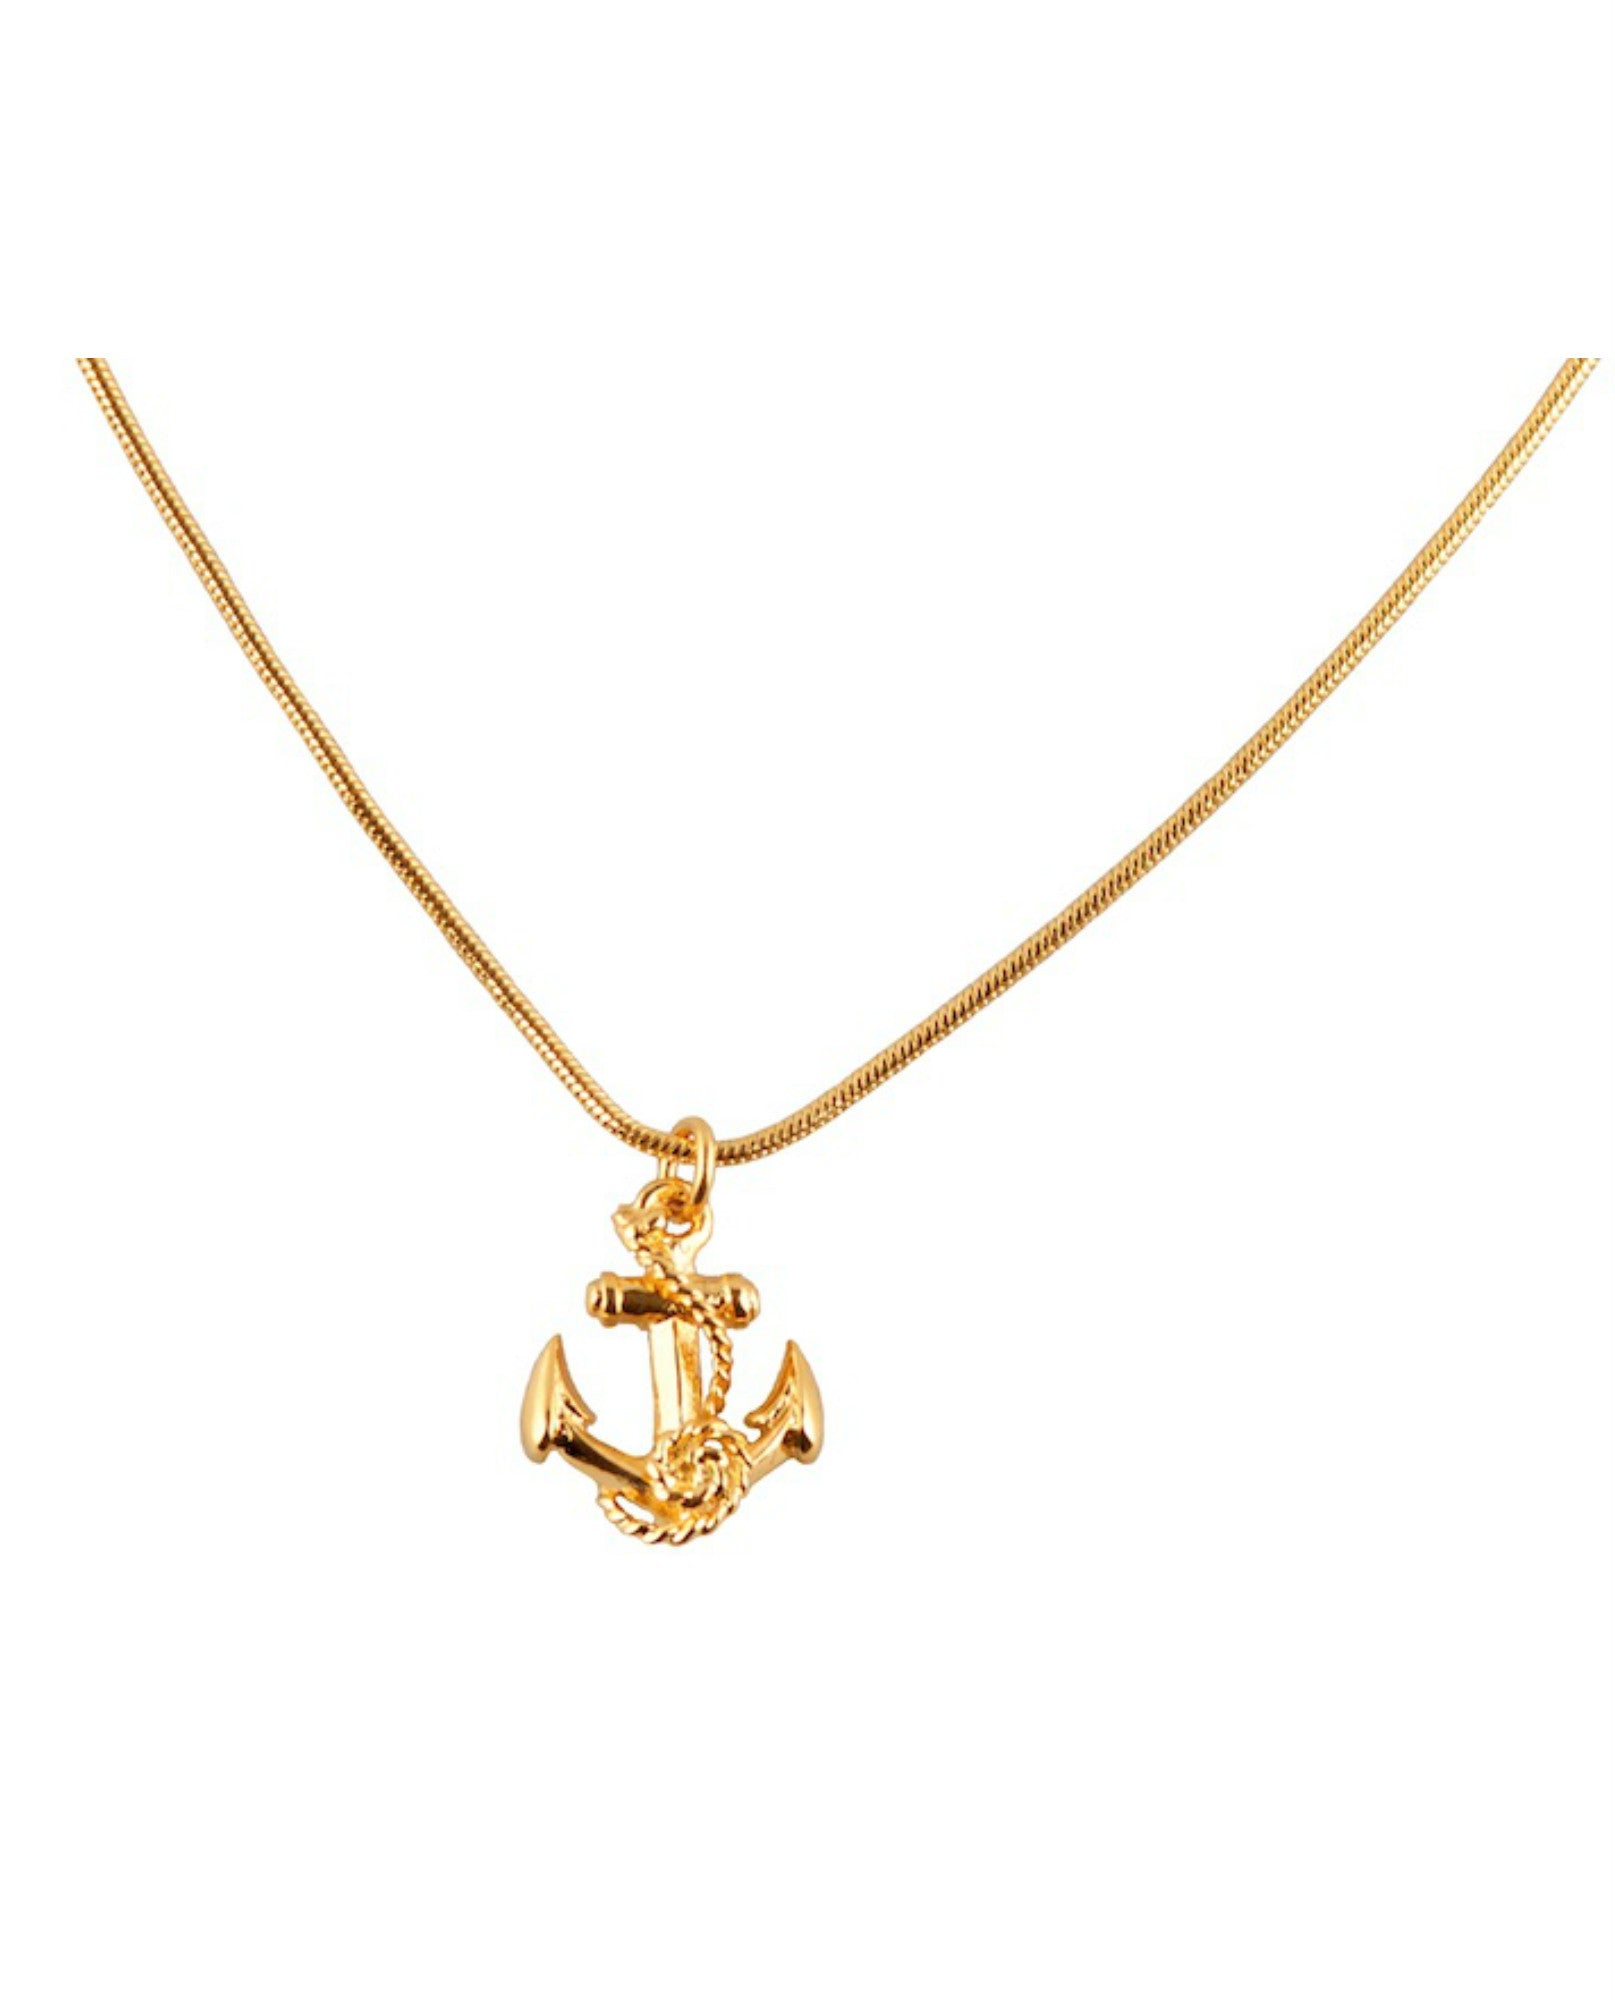 Roz Buehrlen - Gold Anchor Necklace - The Velvet Closet